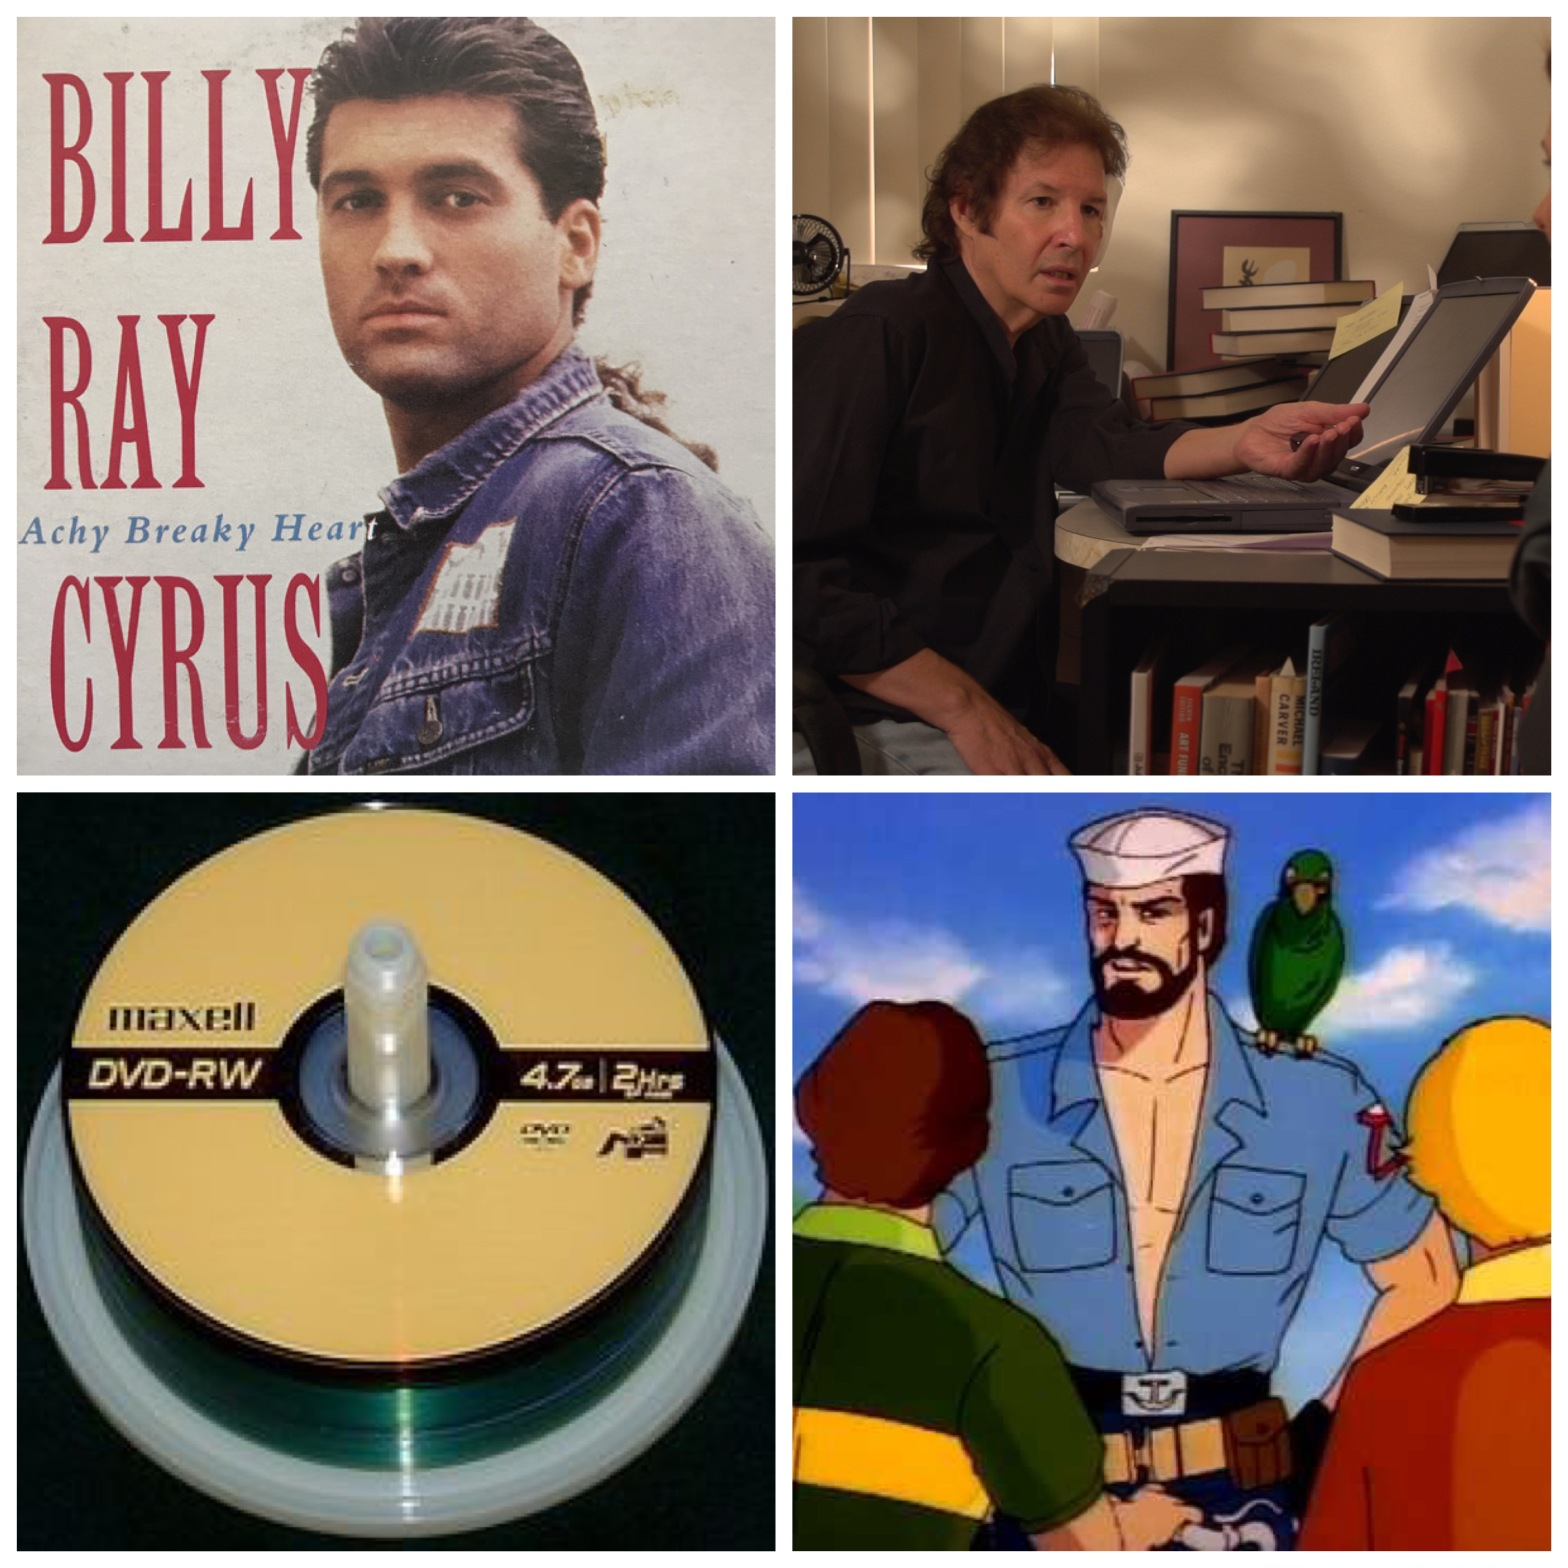 "The cover art for Billy Ray Cyrus's single ""Achy Breaky Heart."" Neil Breen at an old laptop. A stack of DVD-RWs. And the sailor G.I. Joe from the fake PSAs. All this will make sense when you listen to our podcast about Episode 205 of Family Matters."